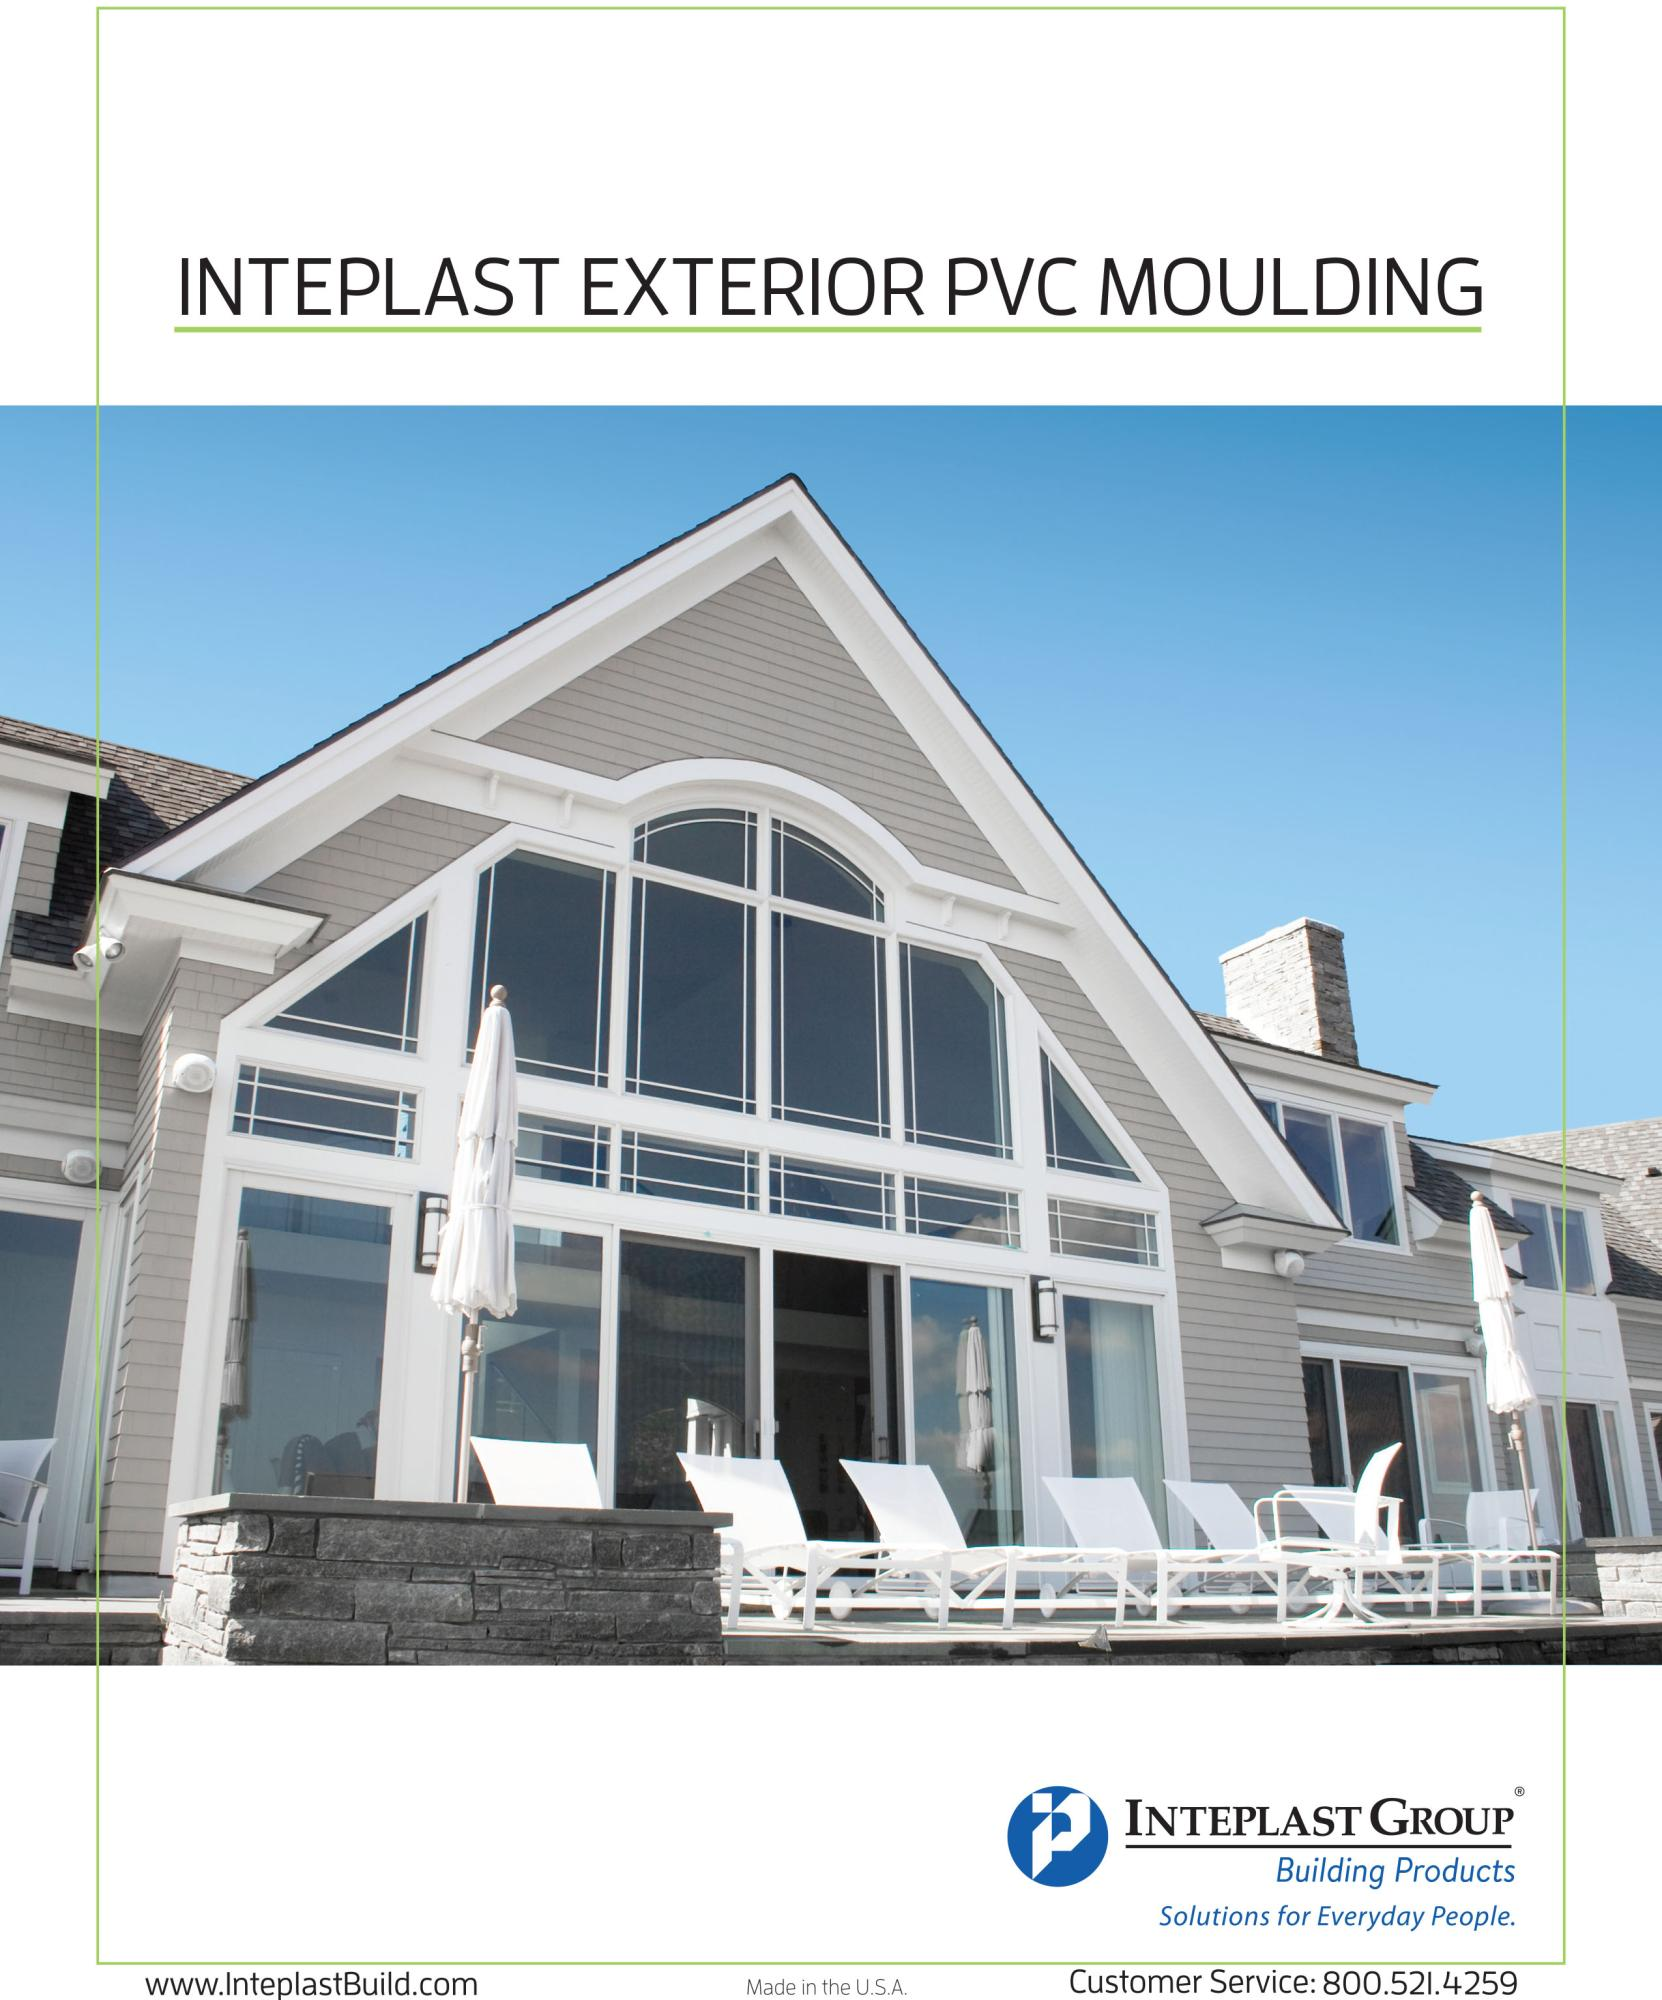 interplast_PVC_Moulding.jpg